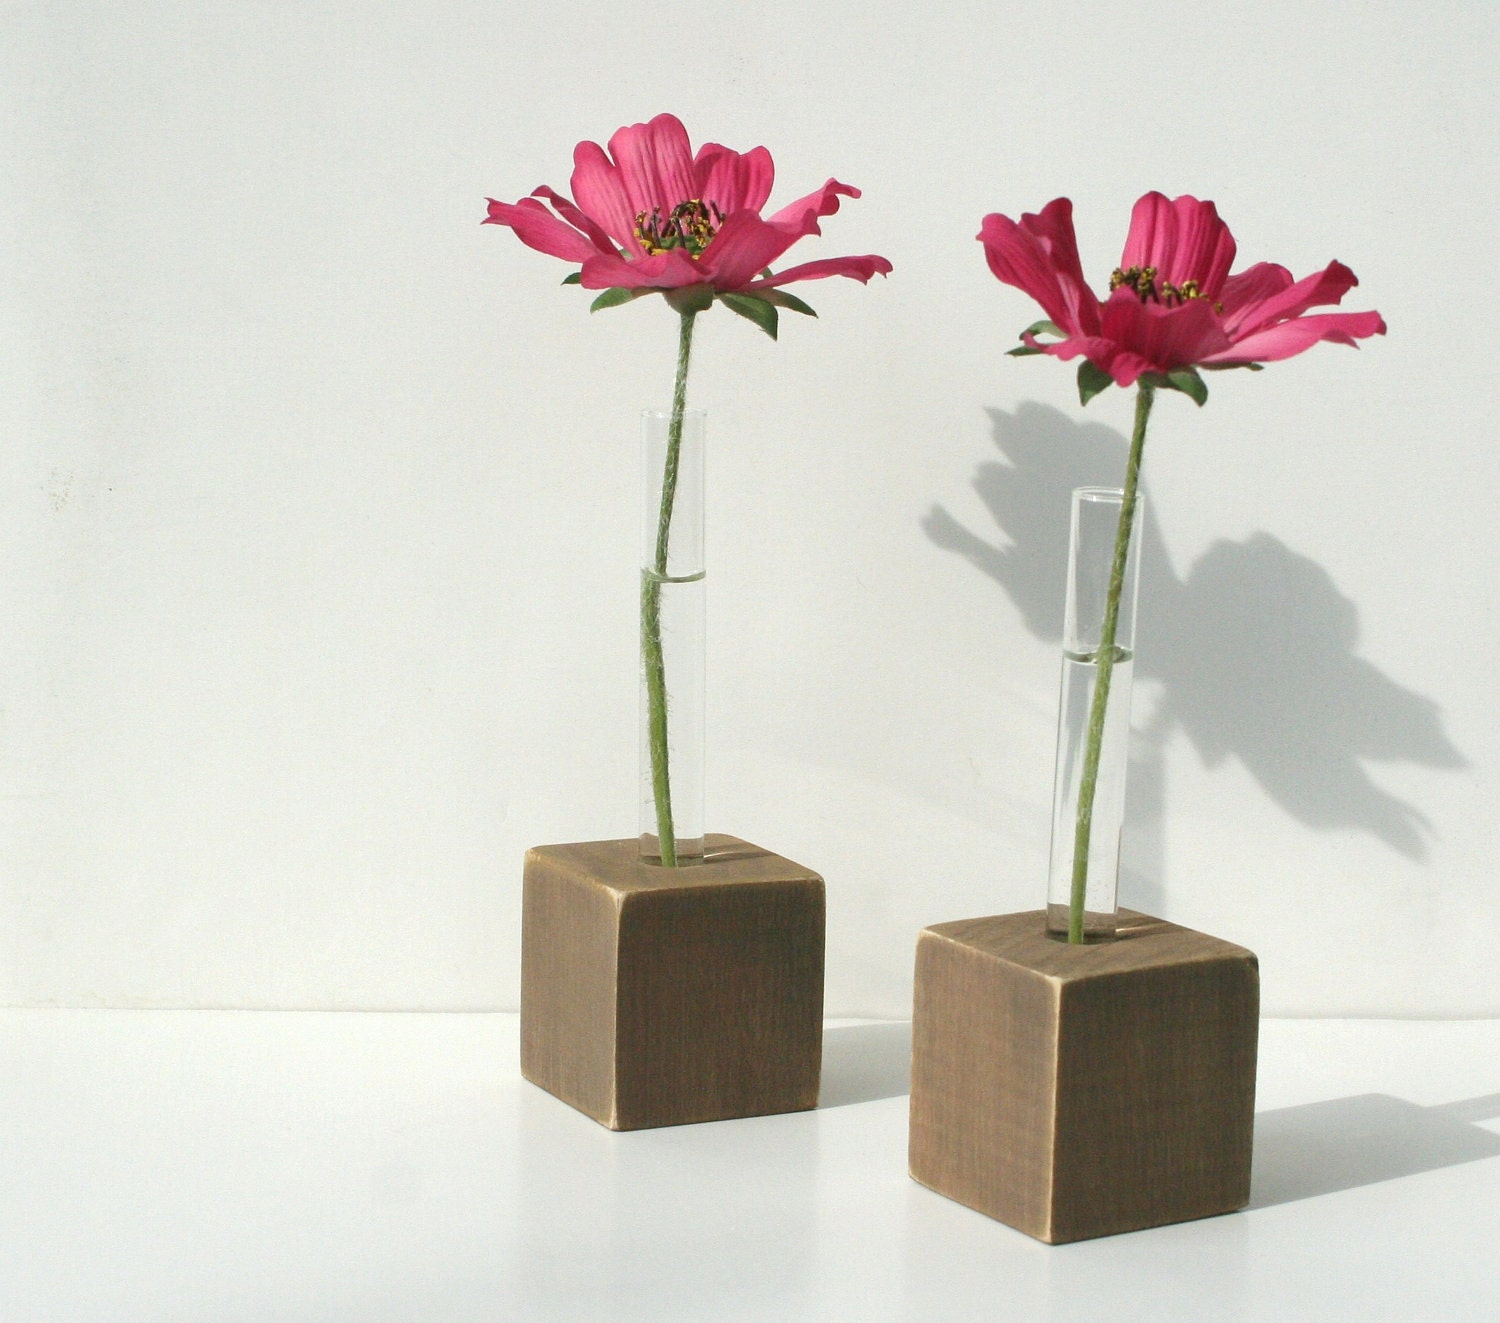 Bud Vases Test Tube Flower Vase Set Of 2 Rustic Brown